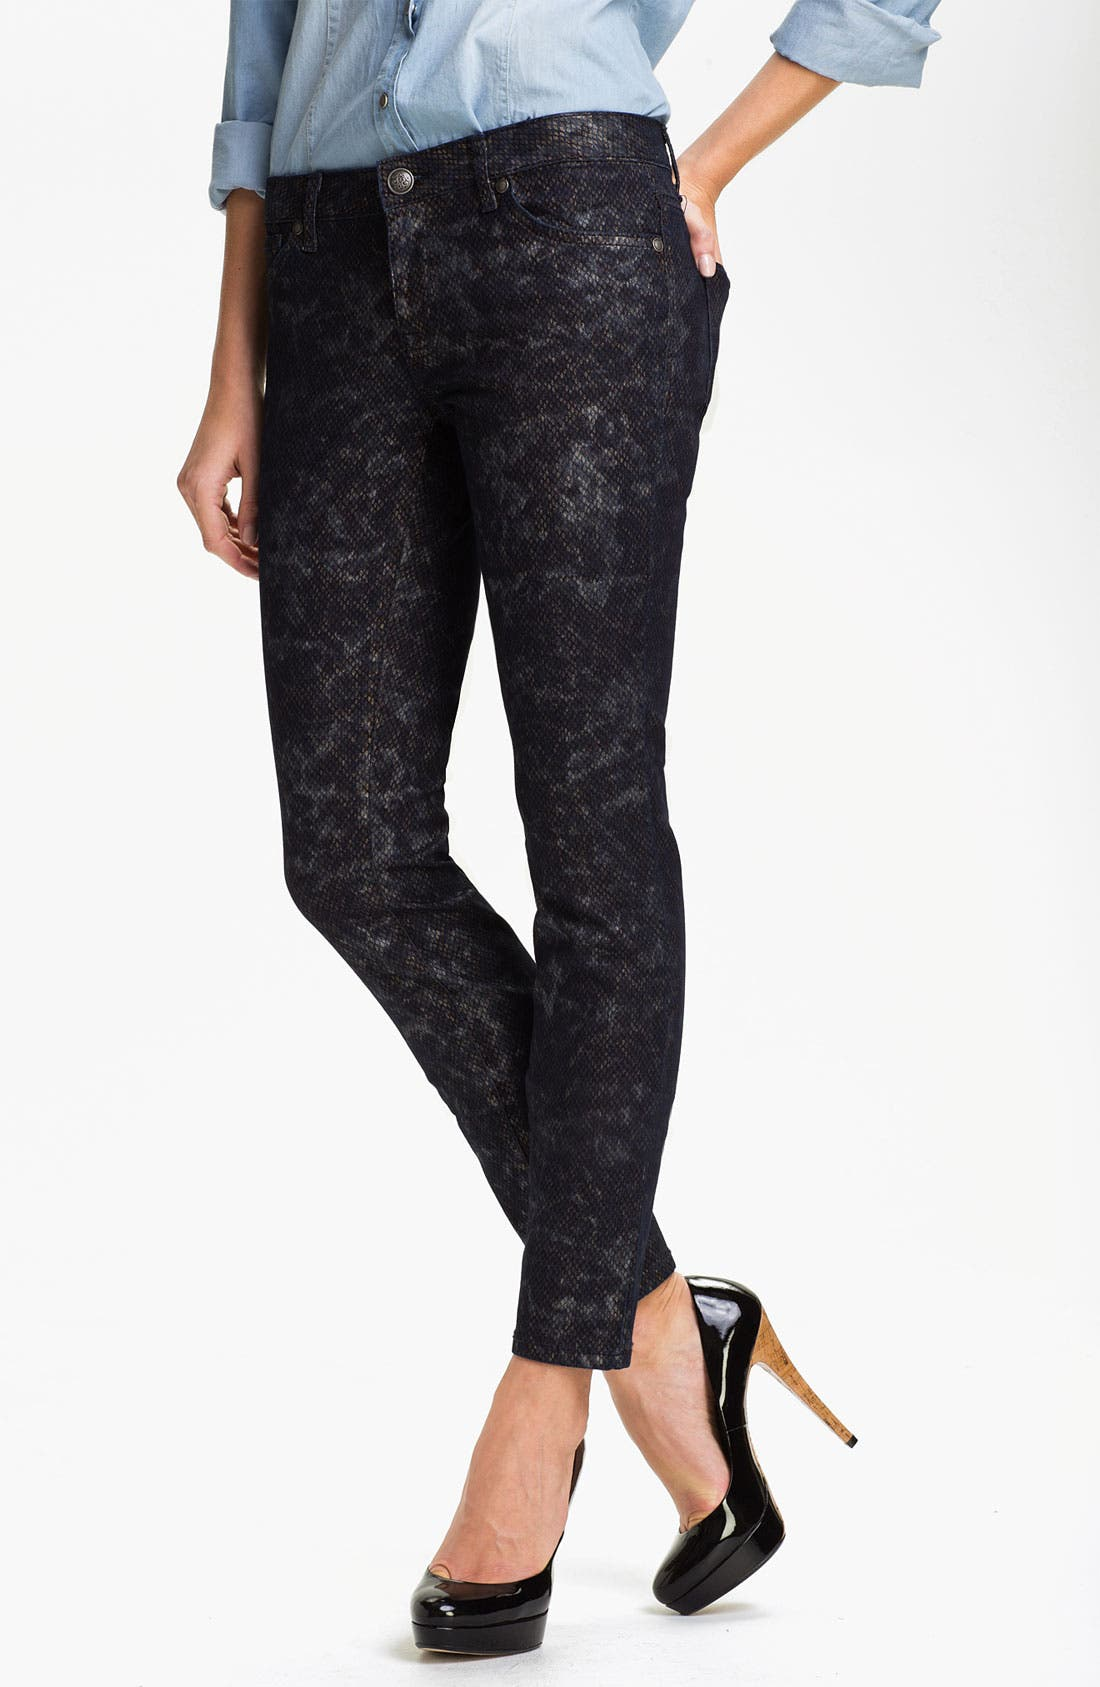 Alternate Image 1 Selected - Jessica Simpson 'Forever' Snakeskin Print Skinny Jeans (Online Exclusive)